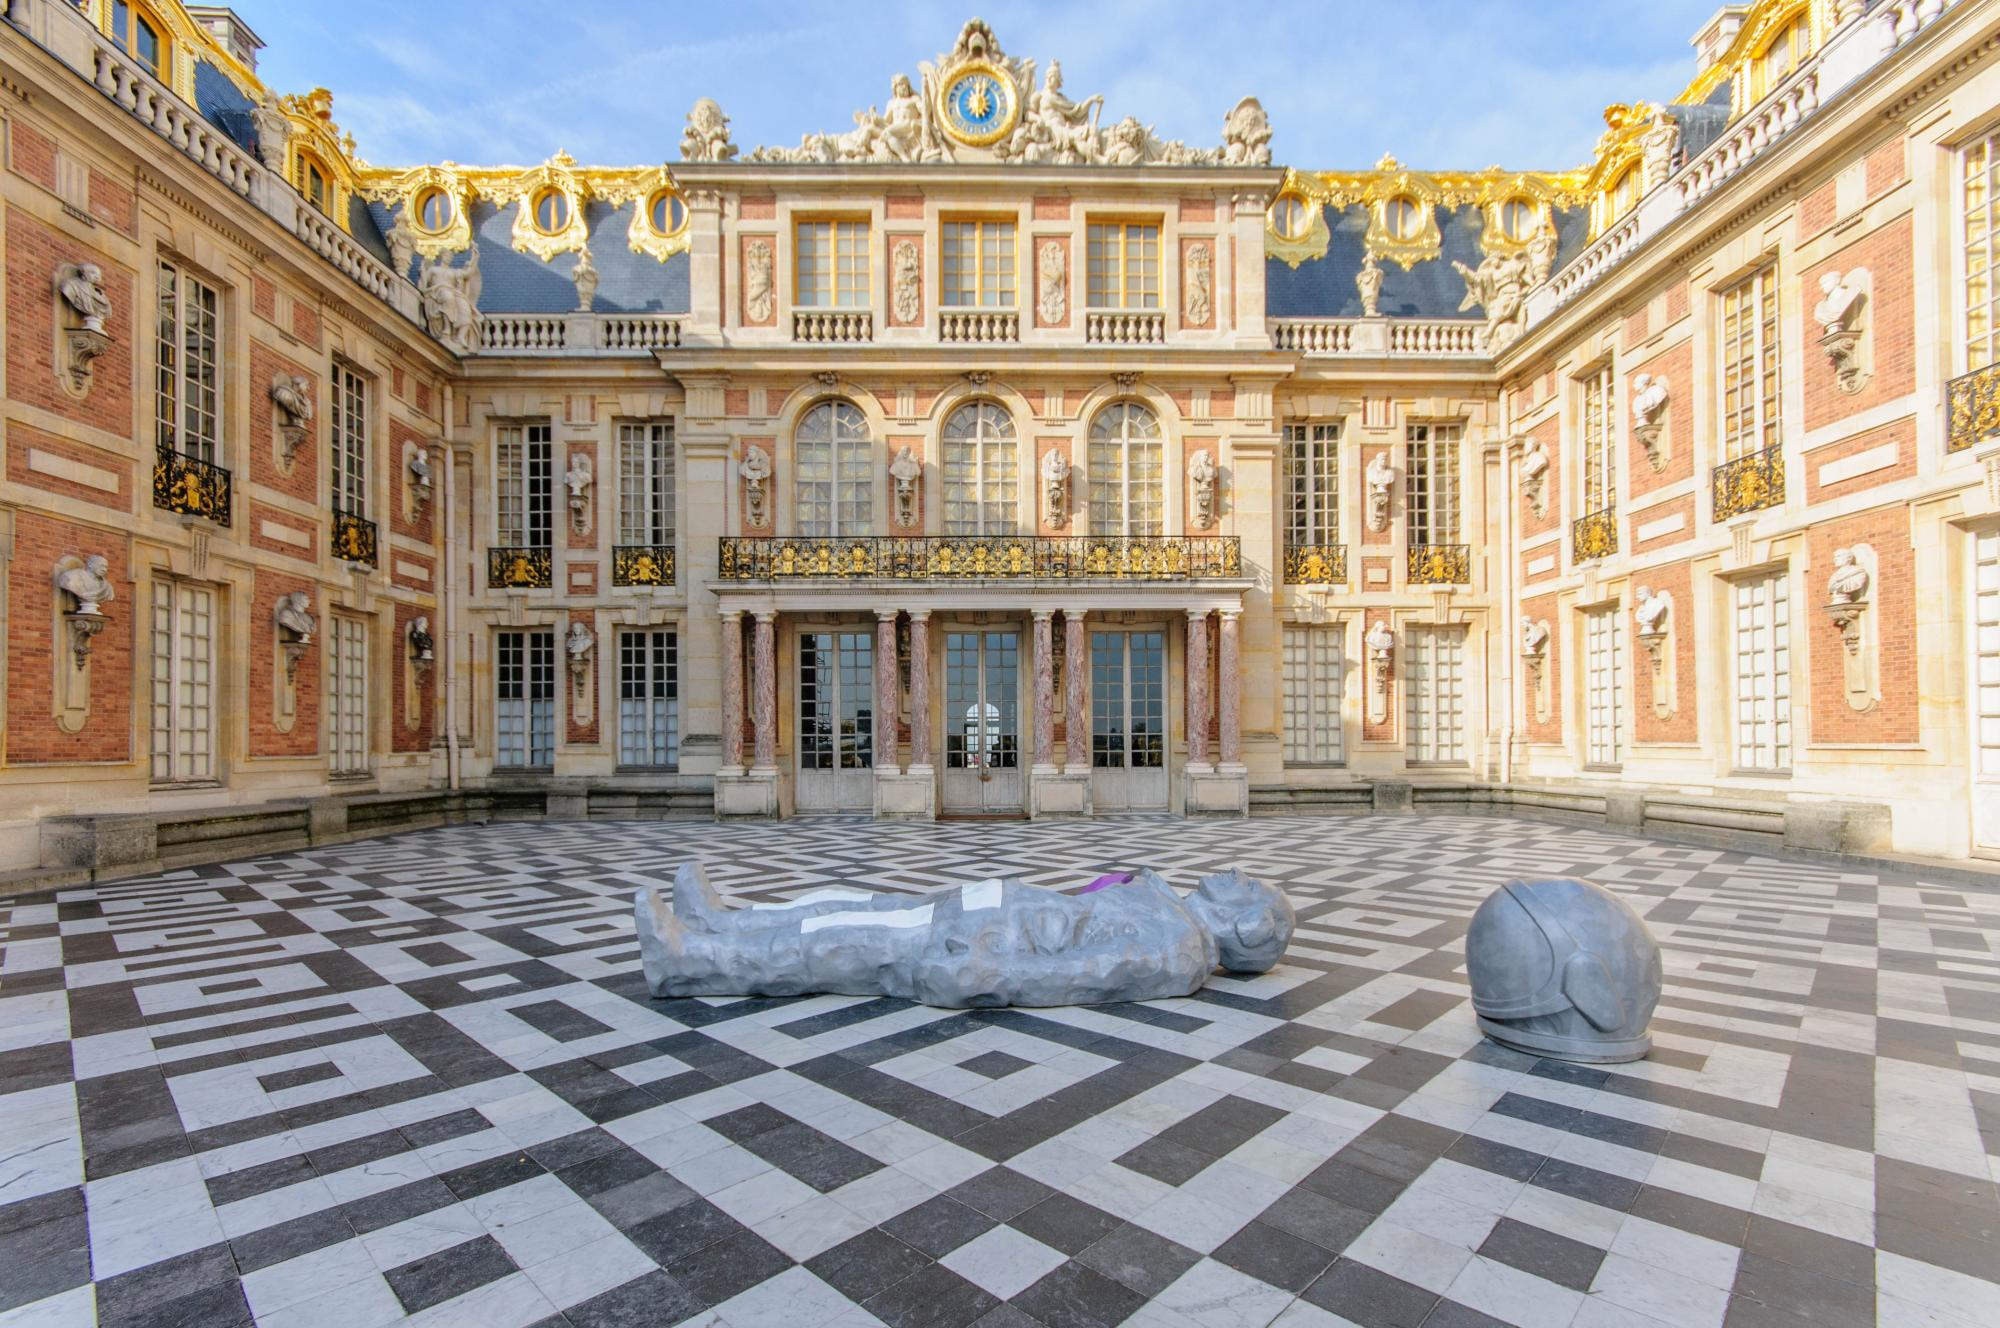 Discover Paris - Vacation package : France, The Grand Tour  - Land of France, travel agency in France